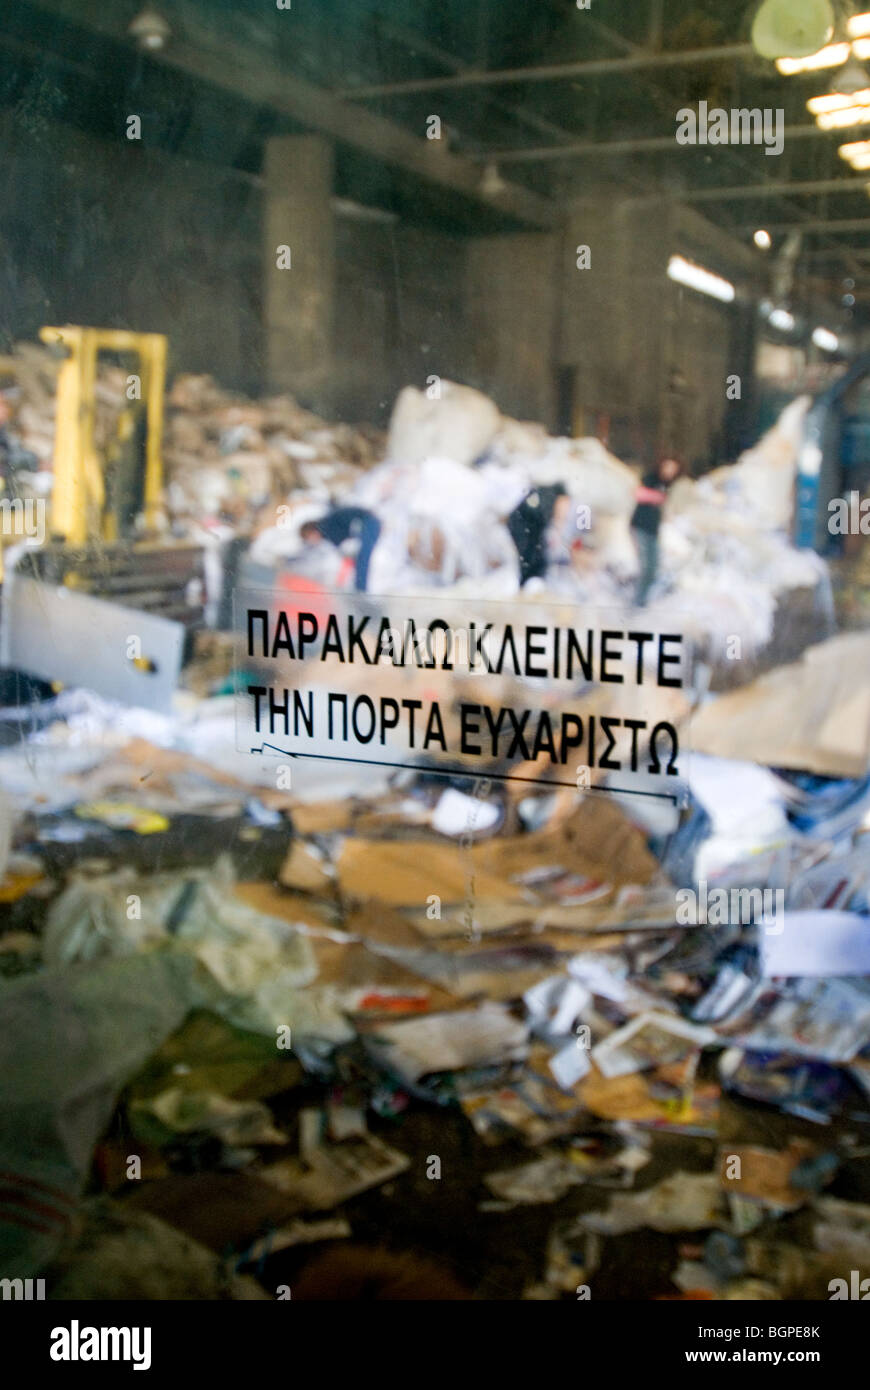 The door of the collection point of the paper recycling company Voutselas in Renti industrial area, Athens, Greece. - Stock Image